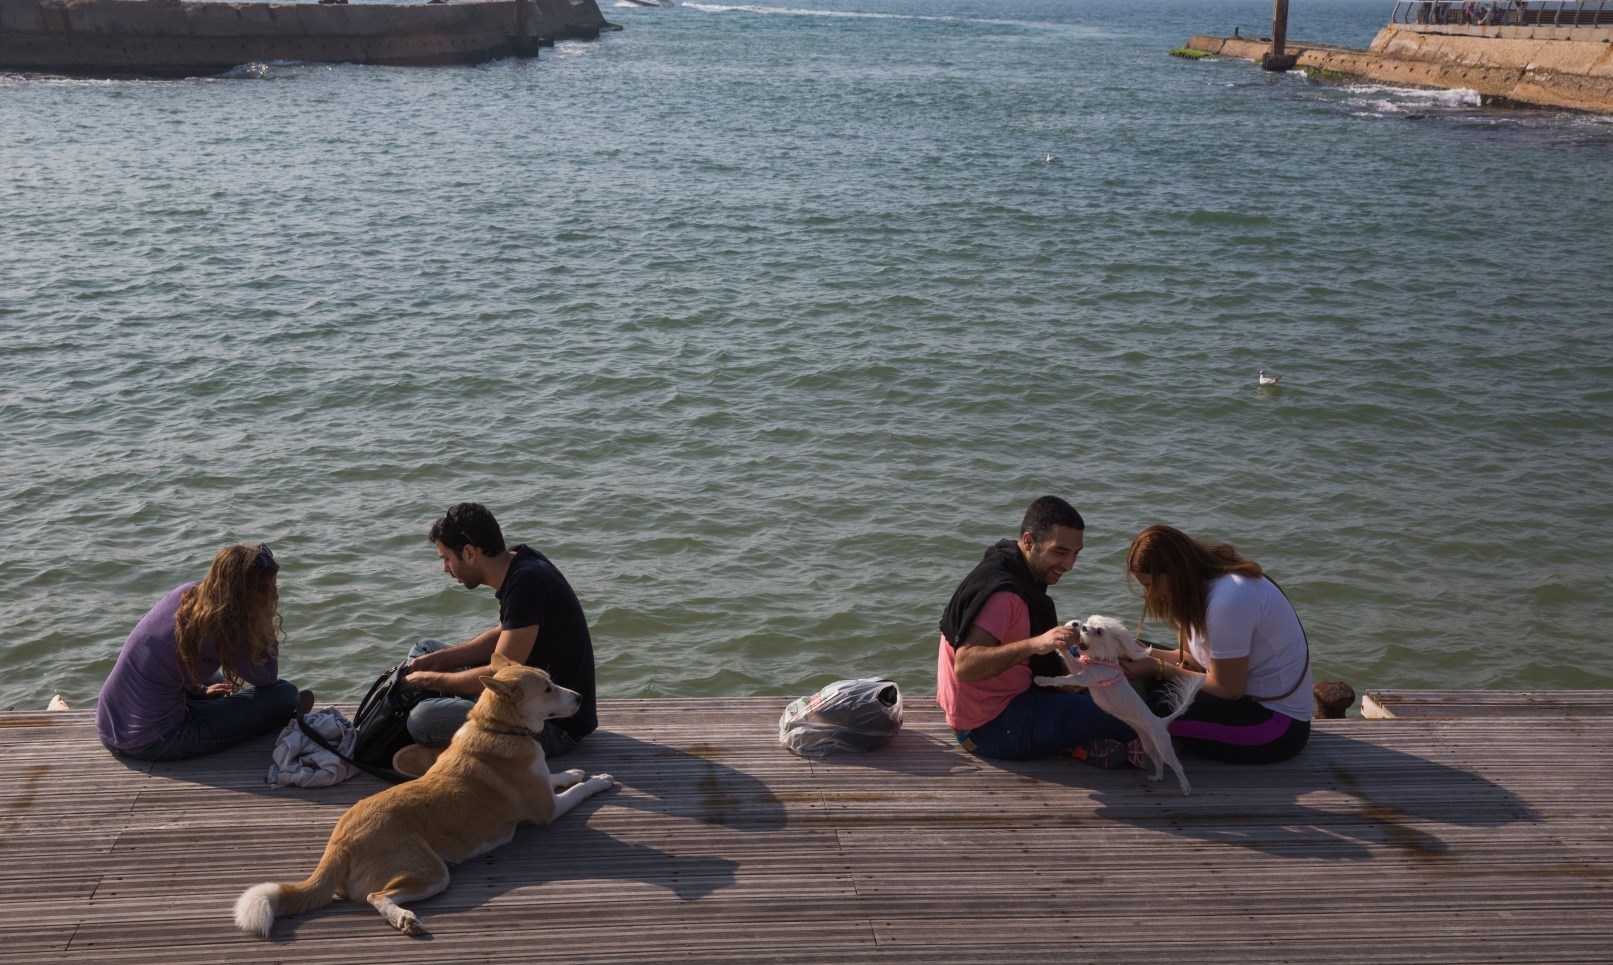 Friendships blossom among dog-owners at the Tel Aviv Port. Photo by Nati Shohat/FLASH90